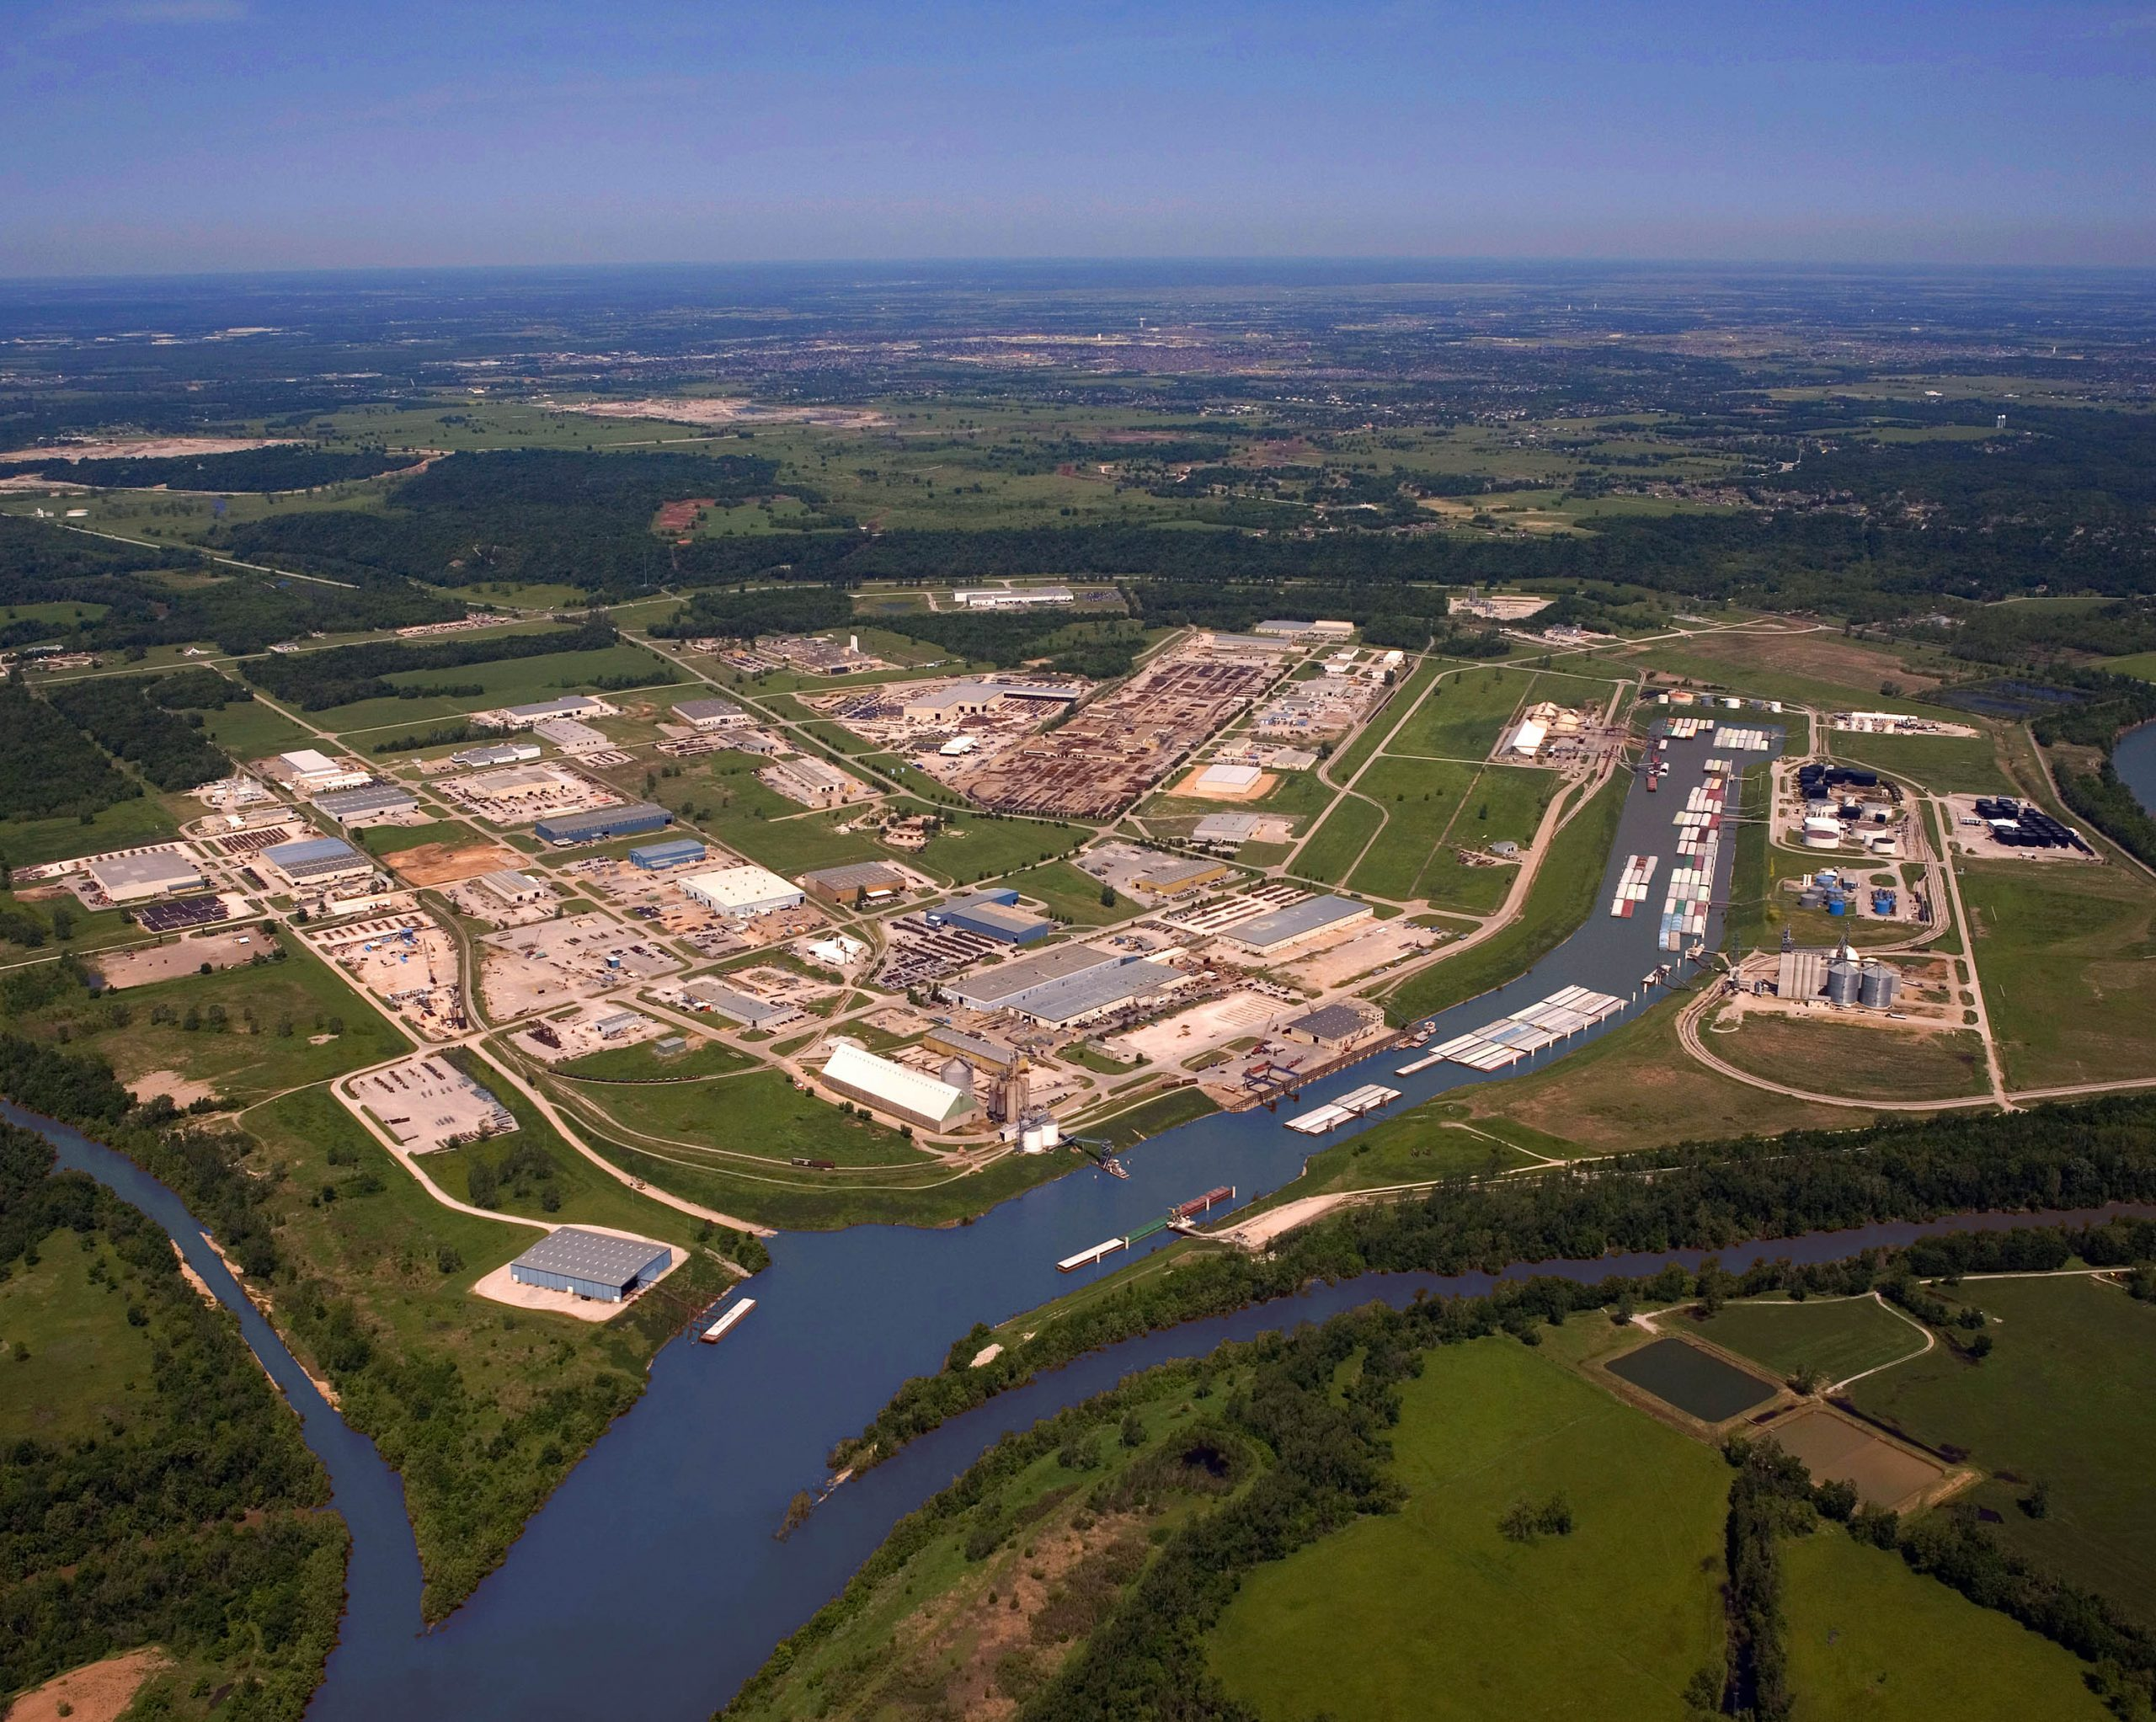 Aerial photo of the Port of Catoosa showing the river and port